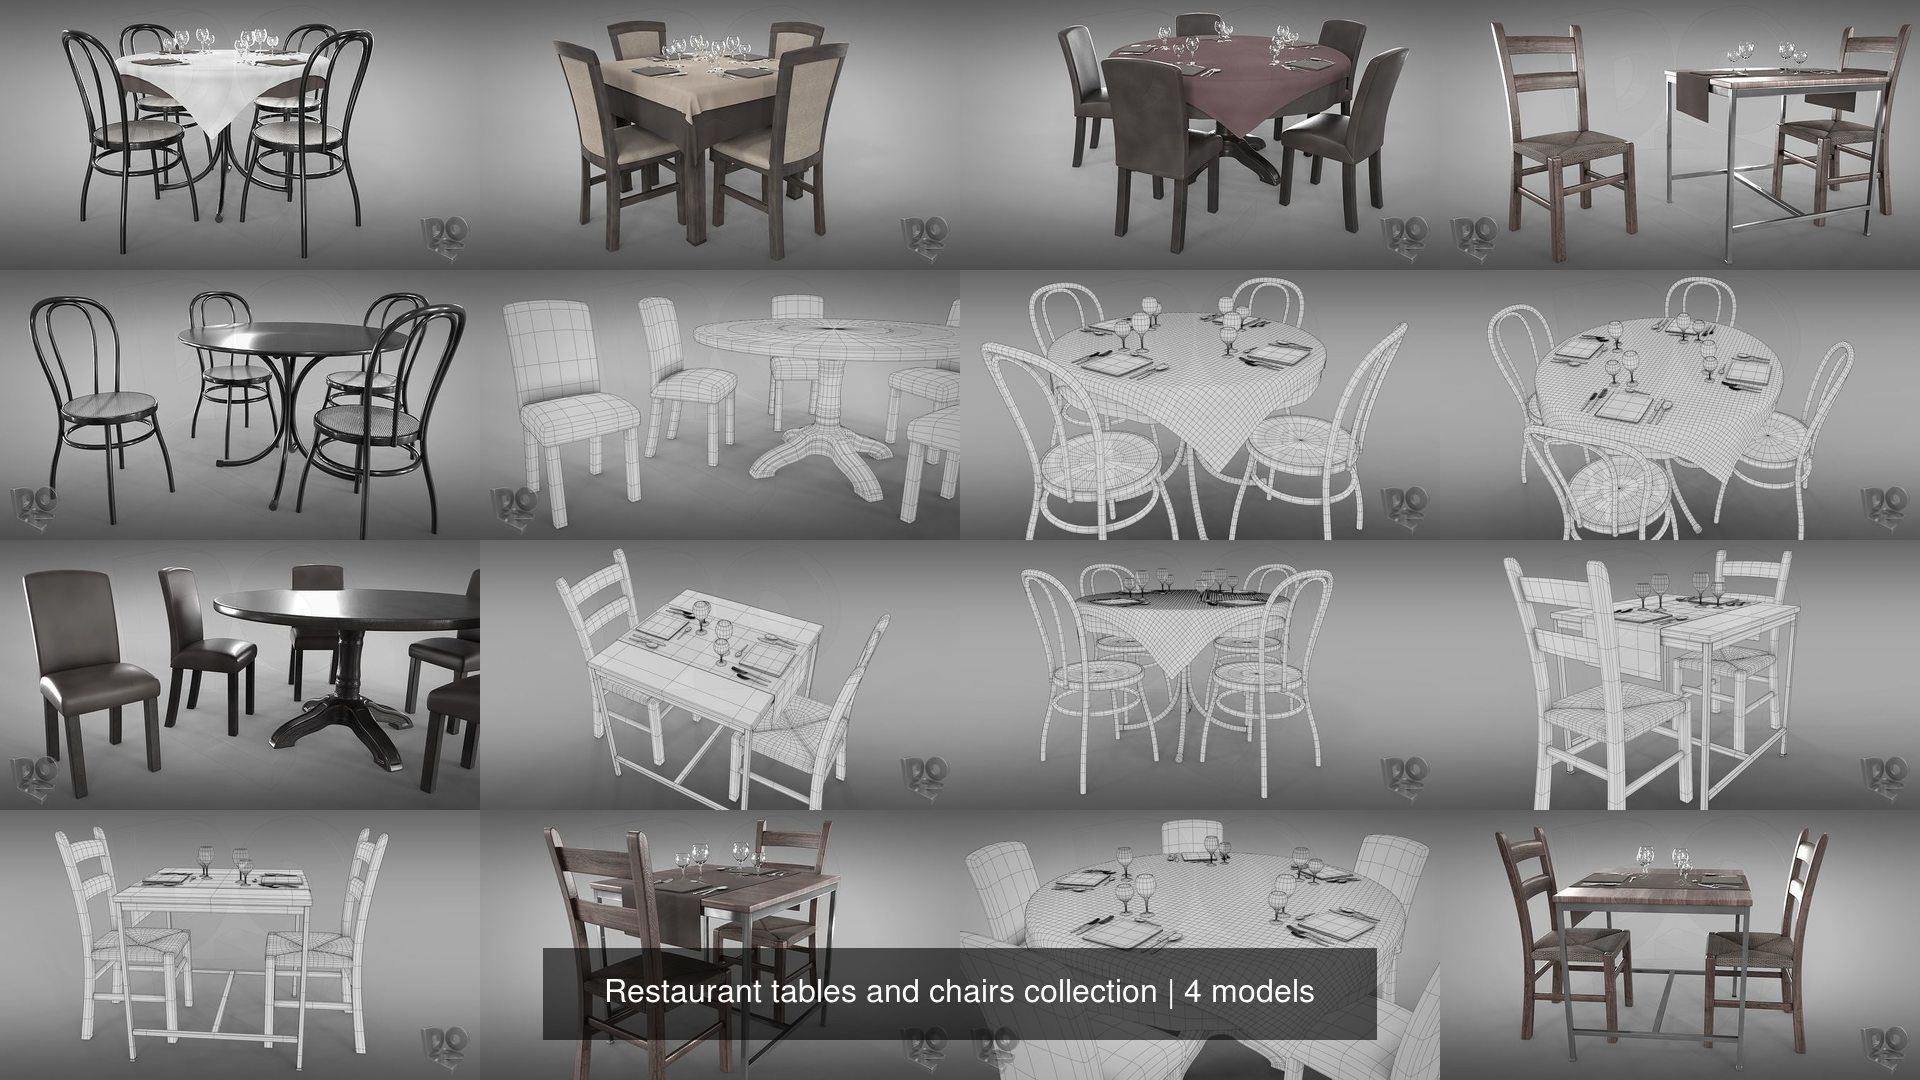 Restaurant tables and chairs collection